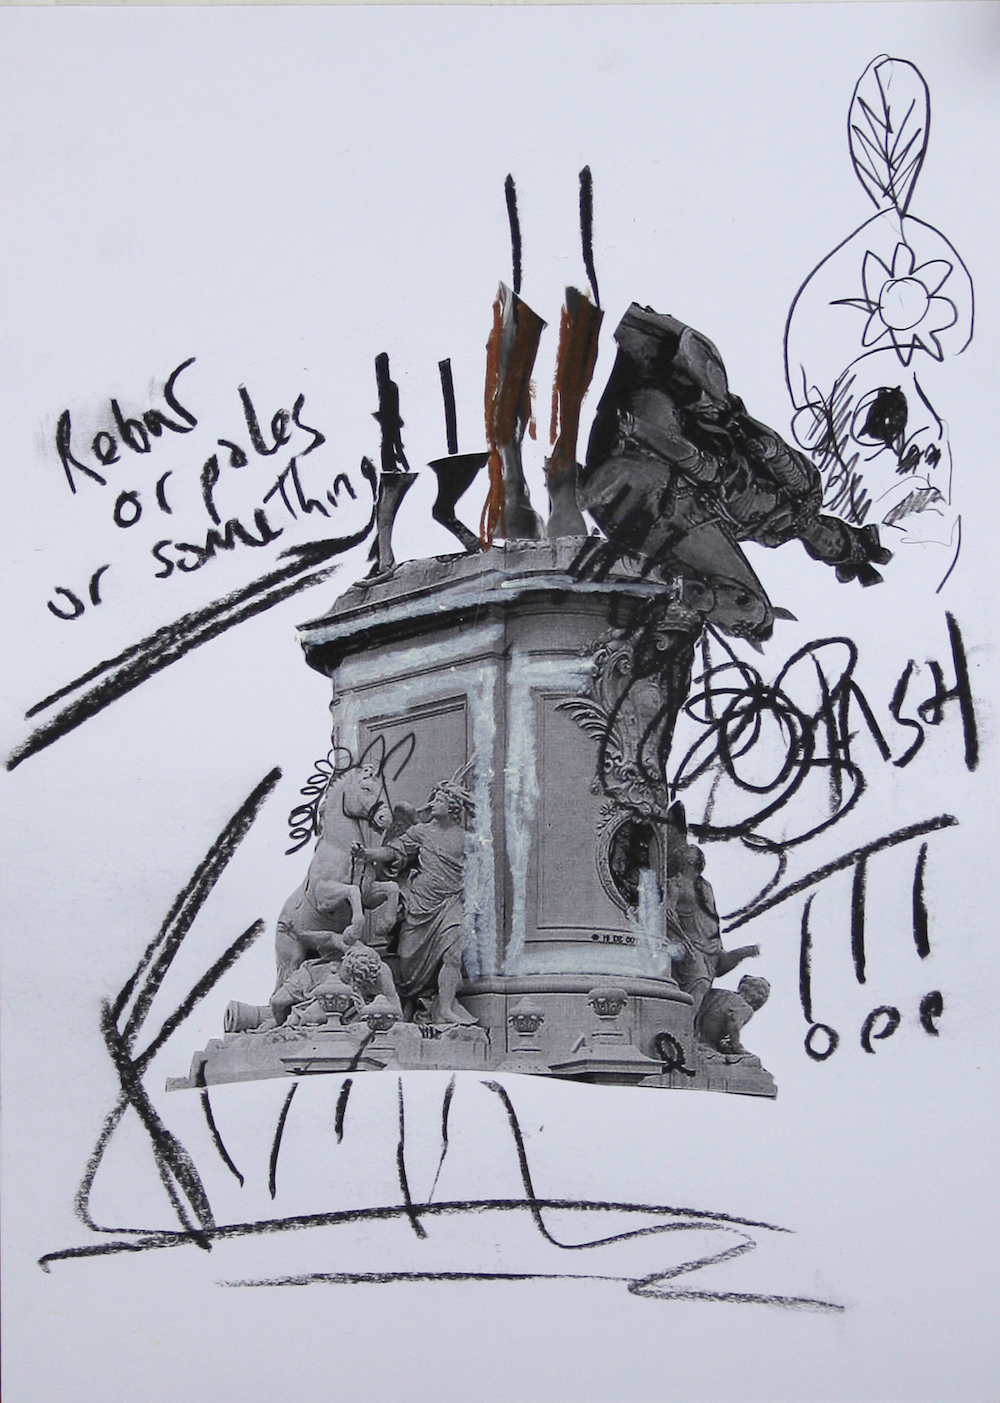 Jamie Fitzpatrick, Sketch for a Broken Monument 13, 2020. Photocopy, oil pastel and charcoal on paper. 42 x 29.5 cm.